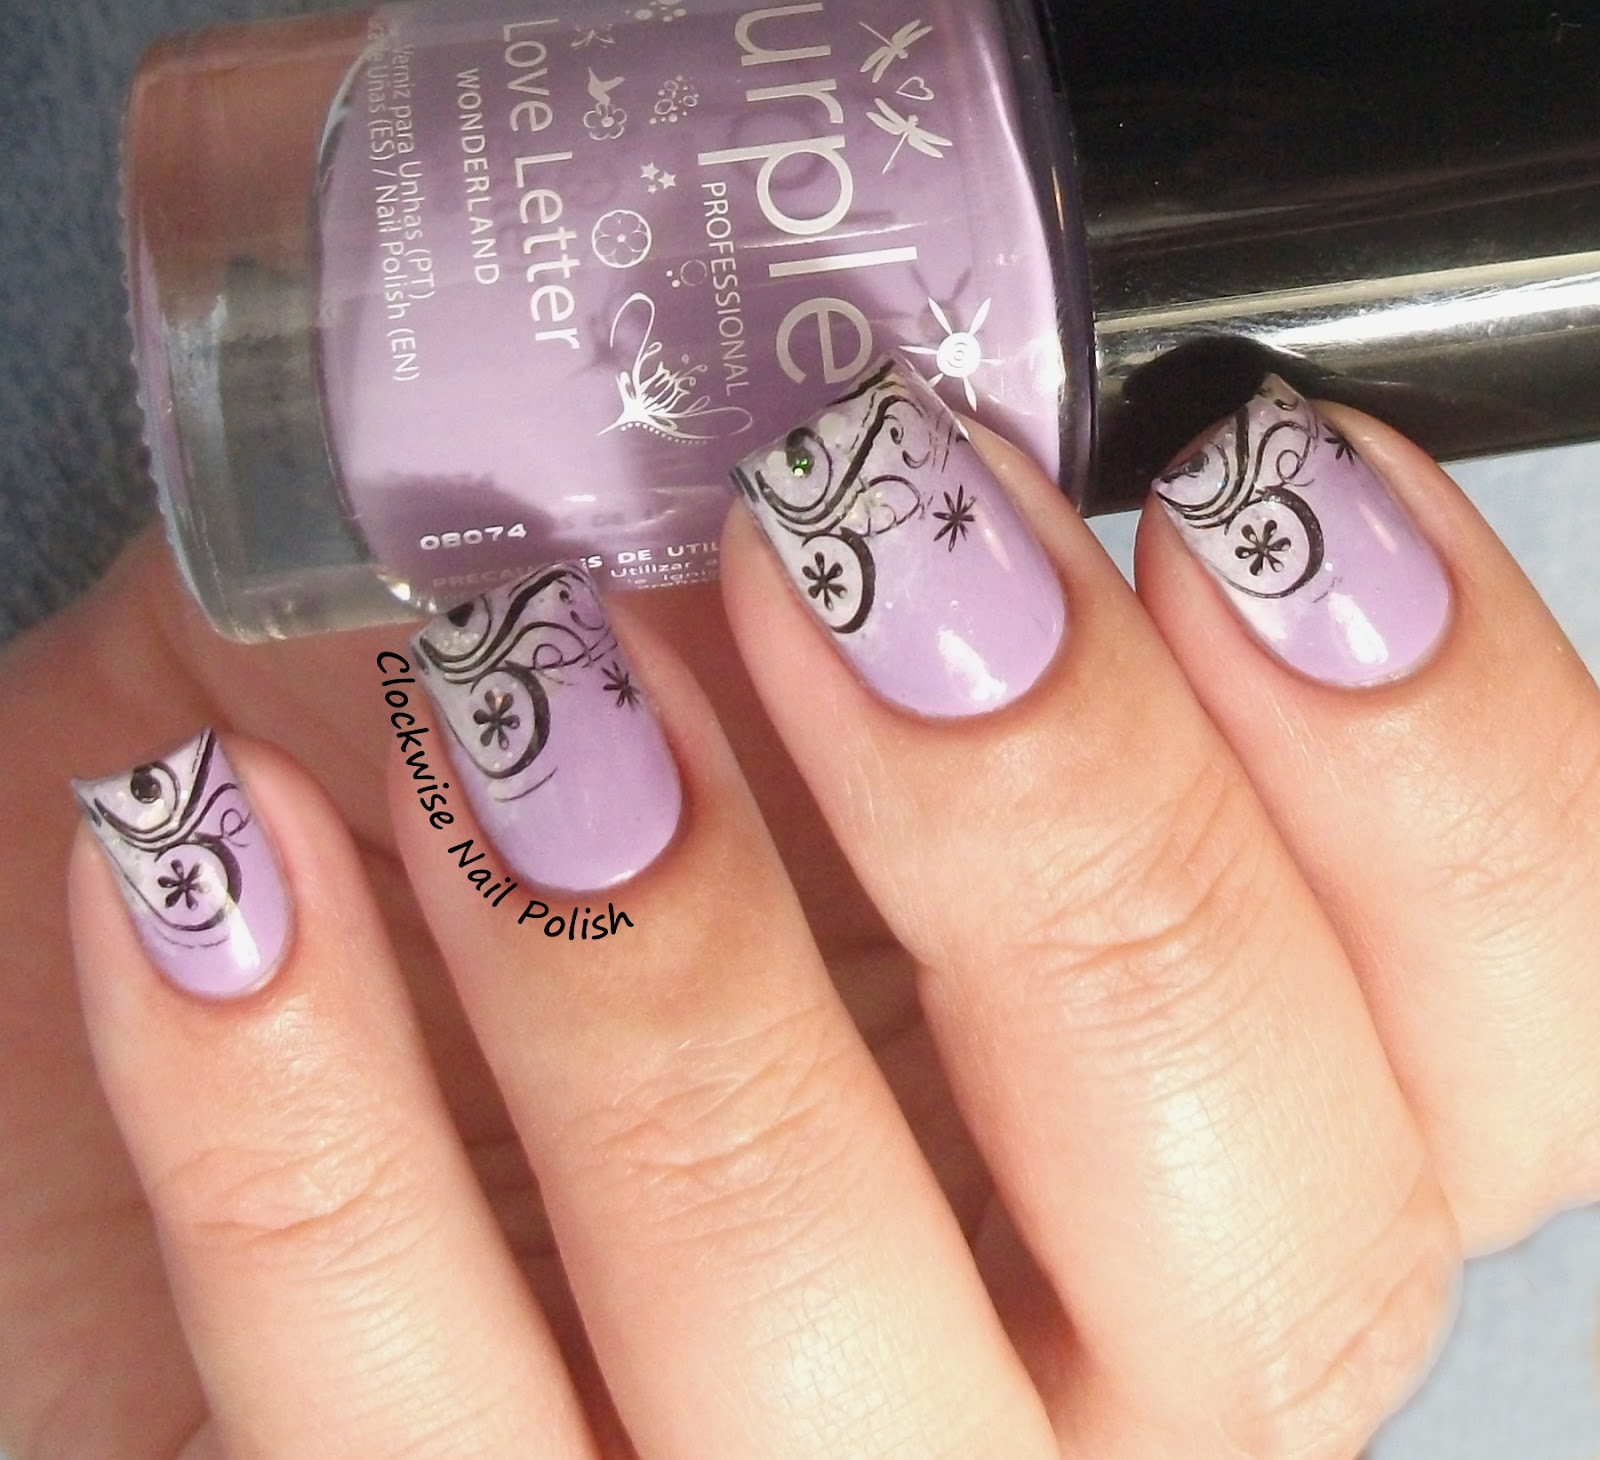 The clockwise nail polish purple professional 103 love letter the clockwise nail polish purple professional 103 love letter spanish french nail art prinsesfo Gallery